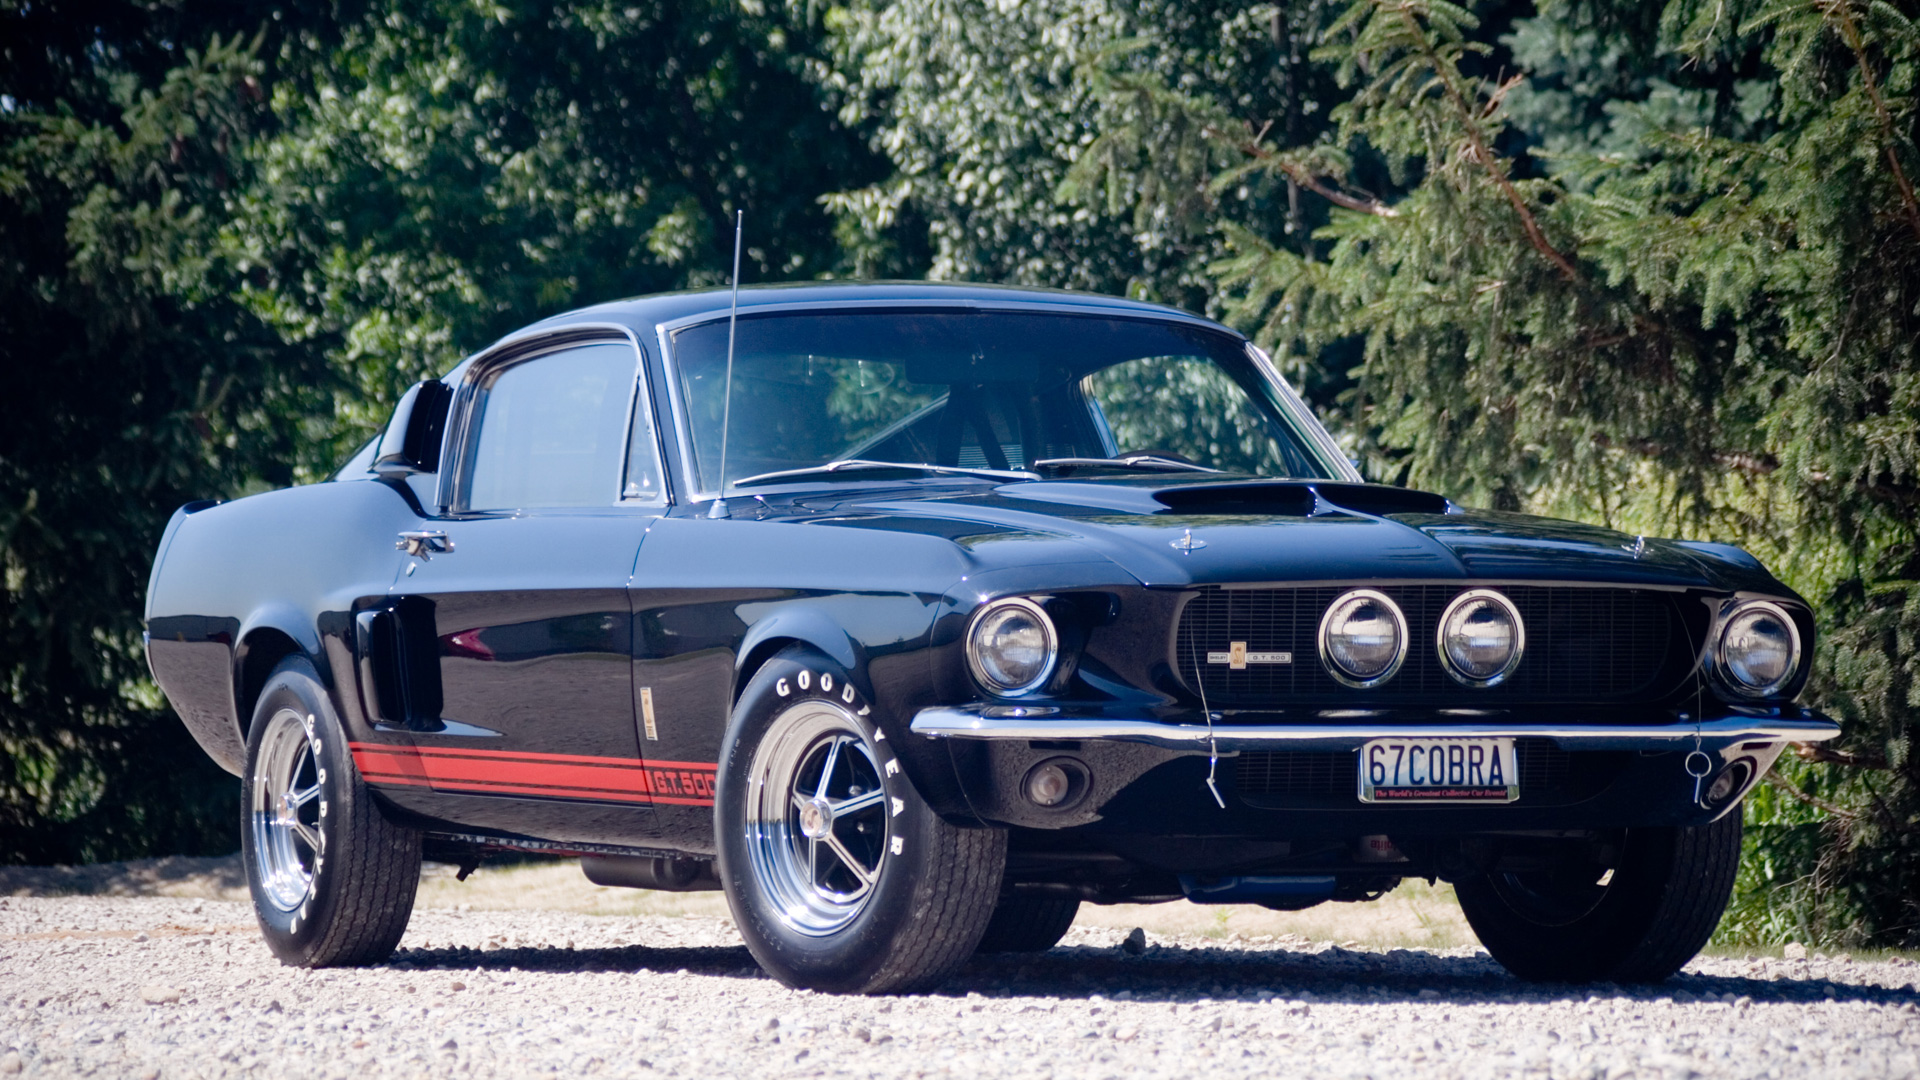 1967 shelby gt500 shelby gt 500 1967 shelby gt500 1967 wallpapers